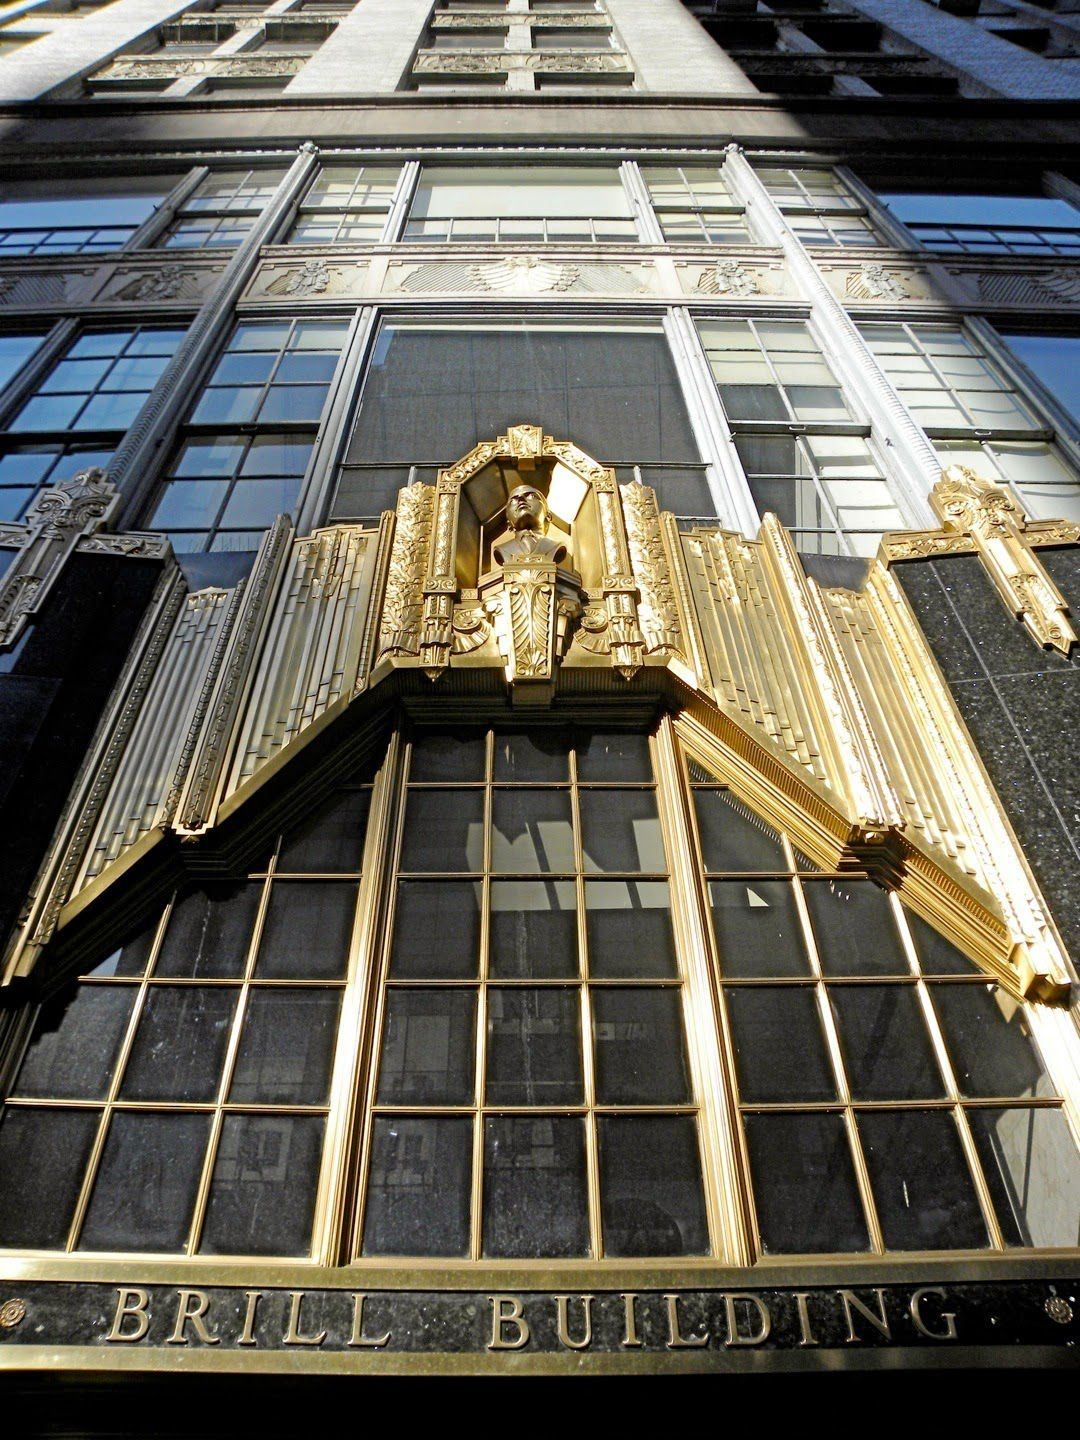 Brill Building - New York, New York - Landmark ...